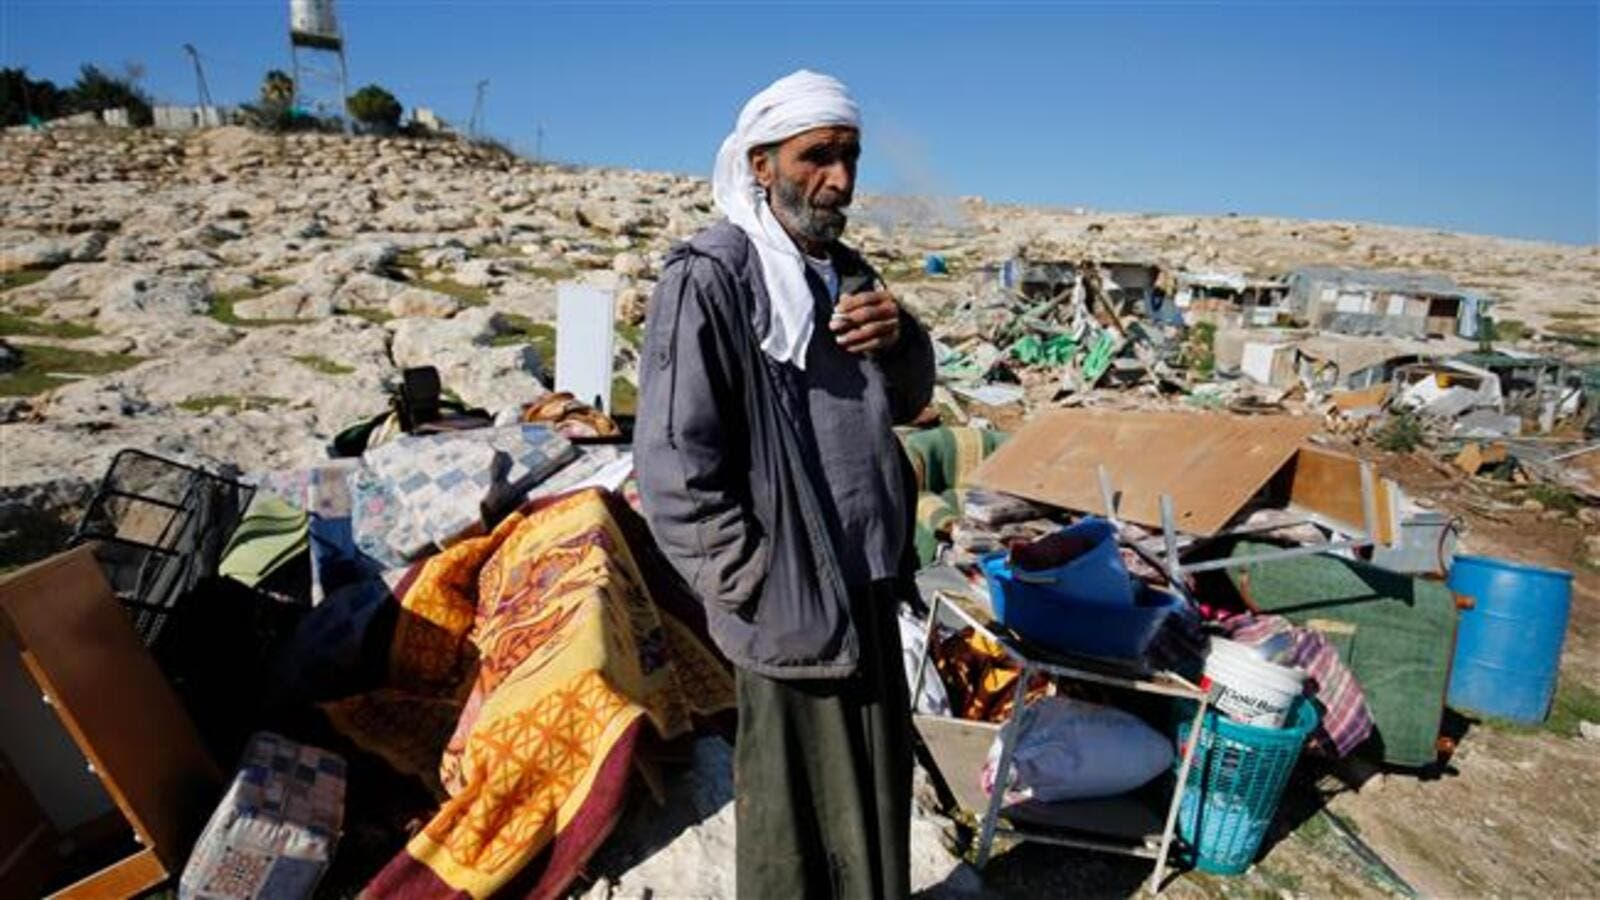 Palestinian Bedouin Abu Nawar stands next to the remains of makeshift homes that were demolished by Israeli forces east of al-Quds (Jerusalem) in the occupied West Bank, on January 6, 2016. (AFP/File)